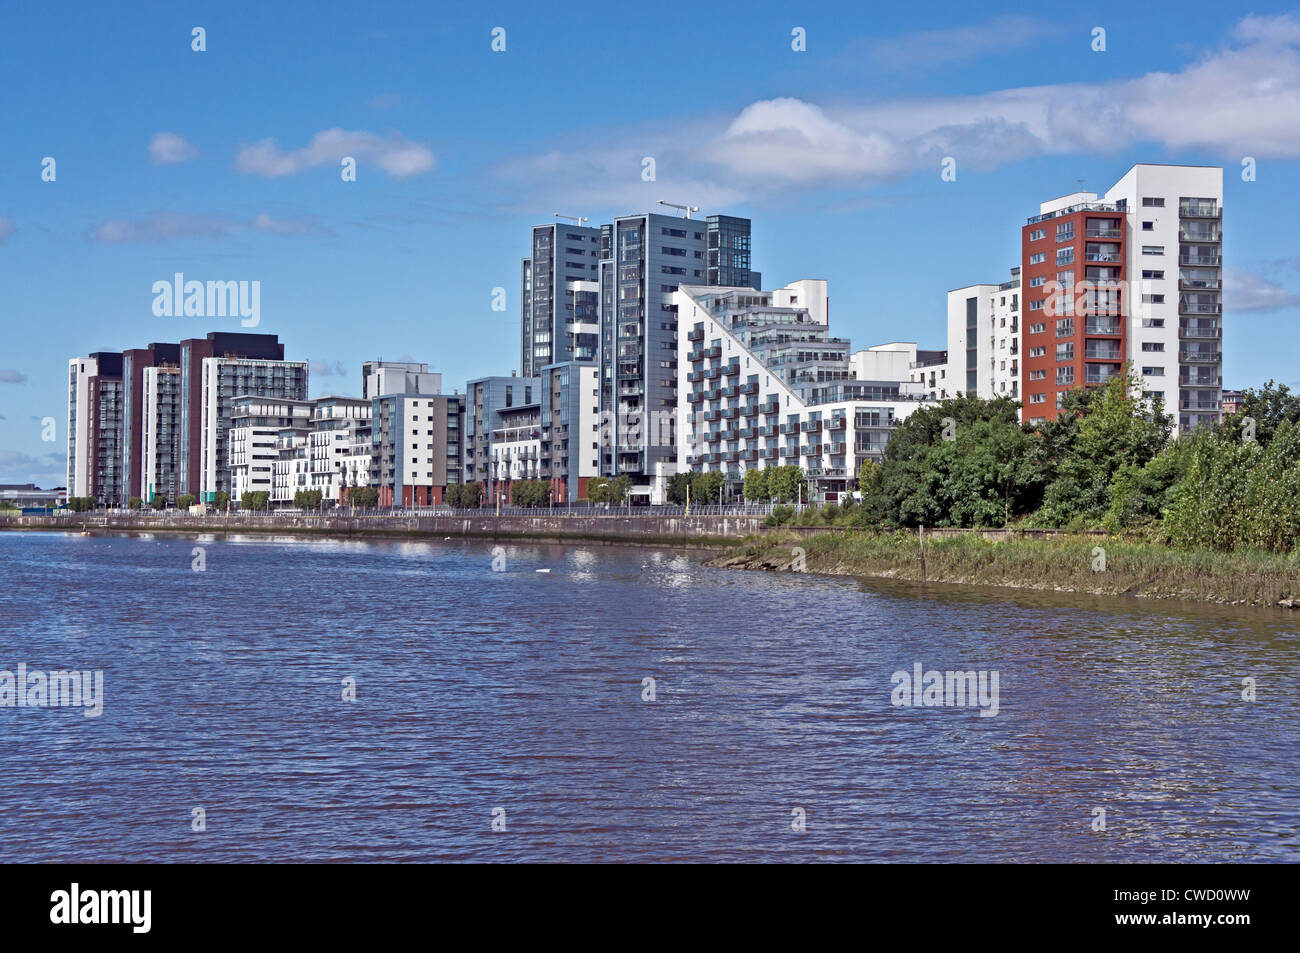 Glasgow Harbour Terraces housing on the River Clyde at Partick in Glasgow Scotland - Stock Image